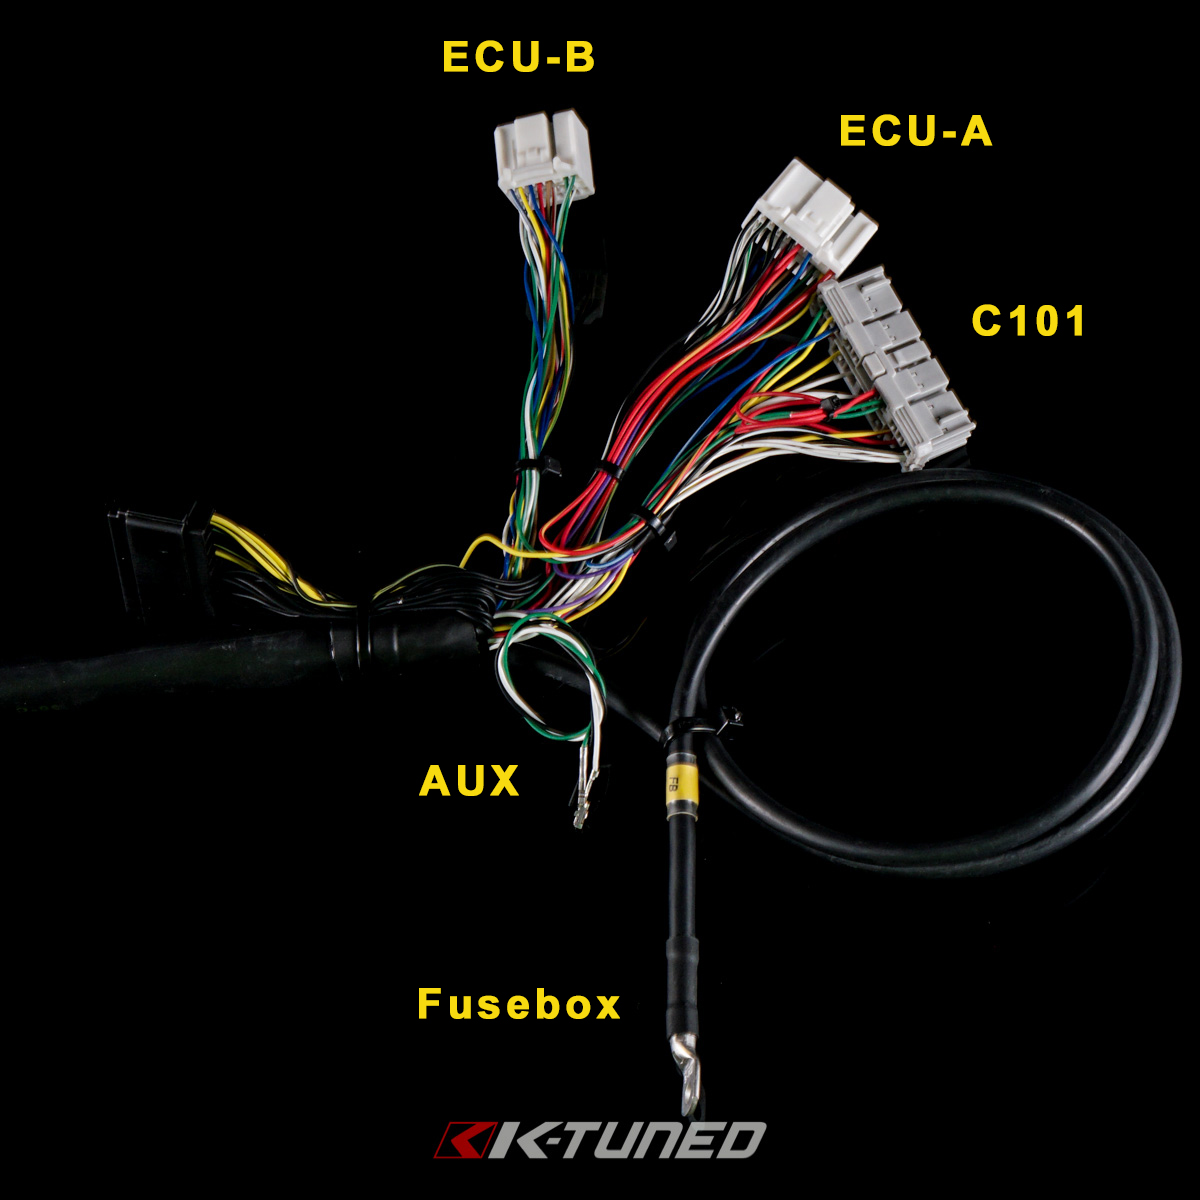 Kth Eng on K20 Engine Wiring Diagram